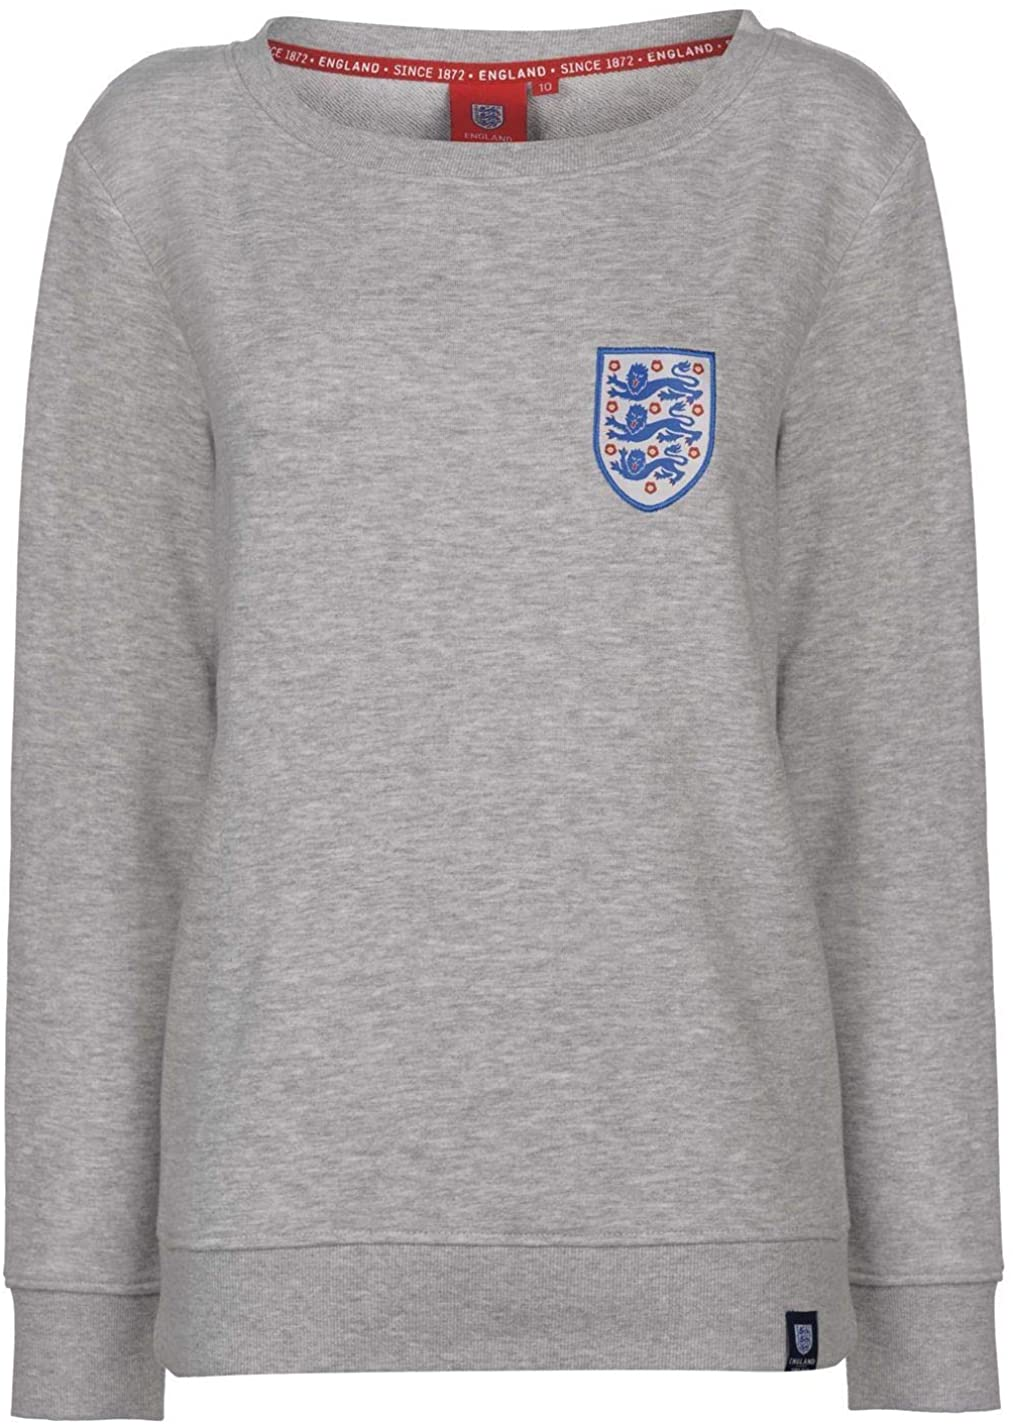 Abercrombie & Fitch FA England Crew Neck Sweatshirt Womens Grey Football Soccer Sweater Pullover Top UK 8 (X-Small)